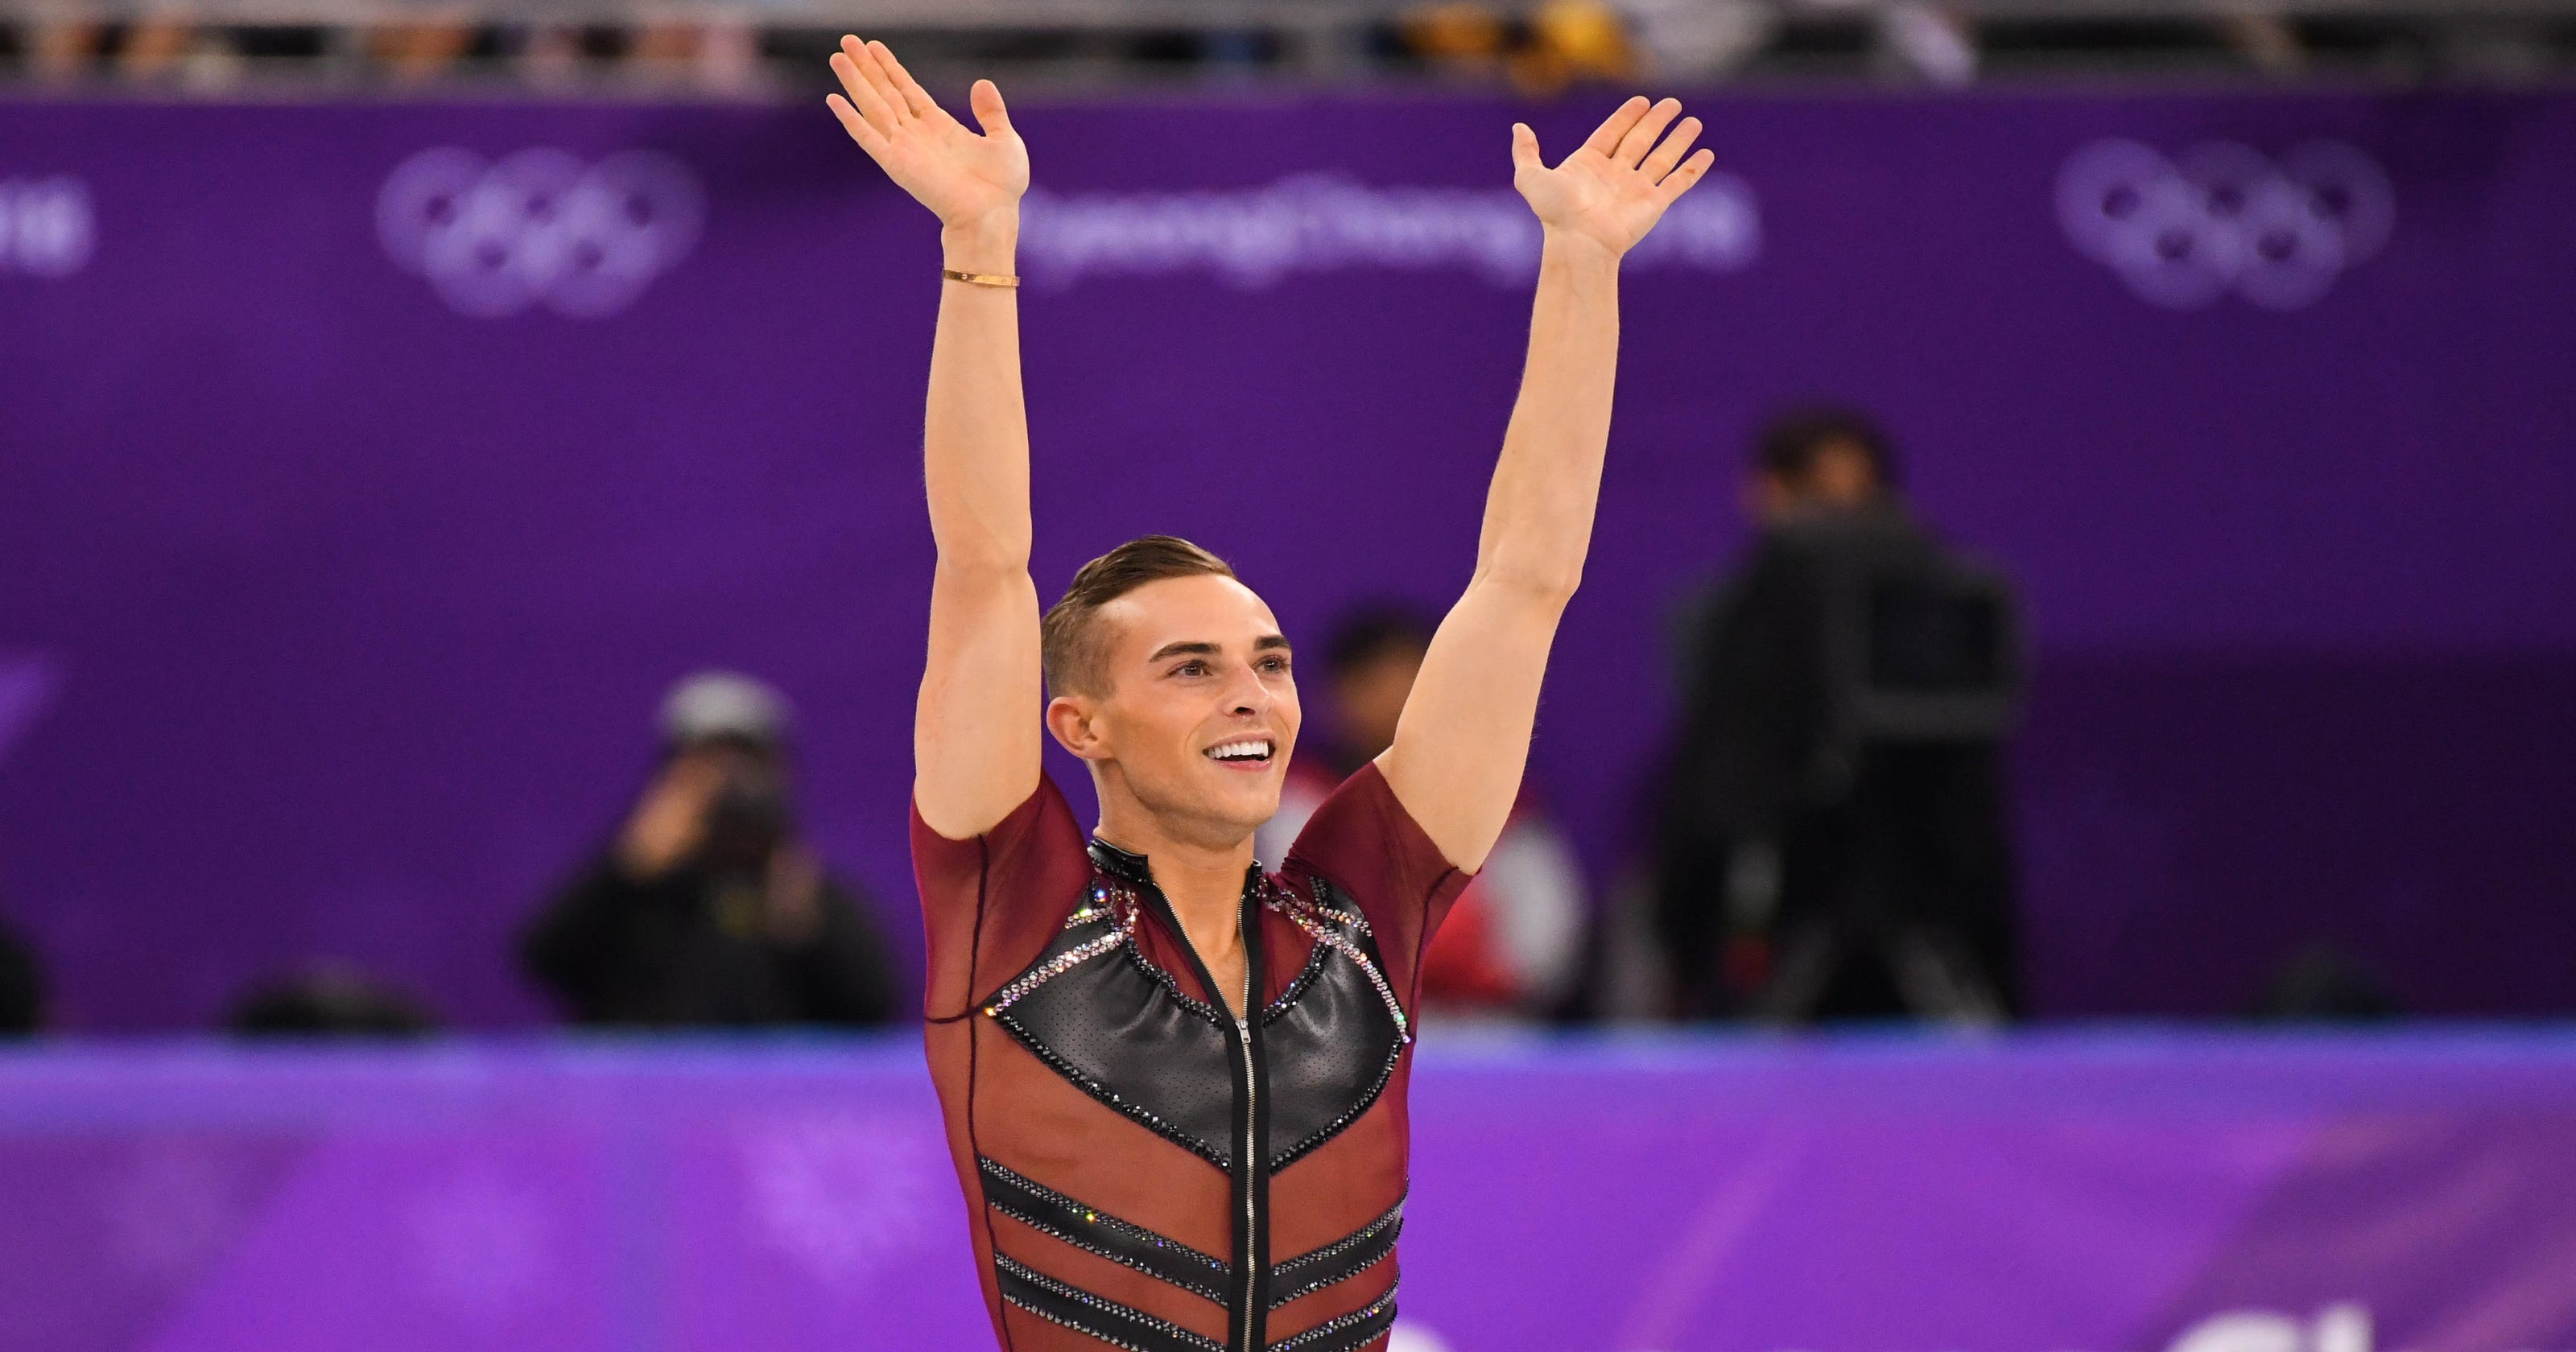 Adam Rippon spills on Sean Spicer, Mike Pence and 'The Masked Singer' ahead of memoir